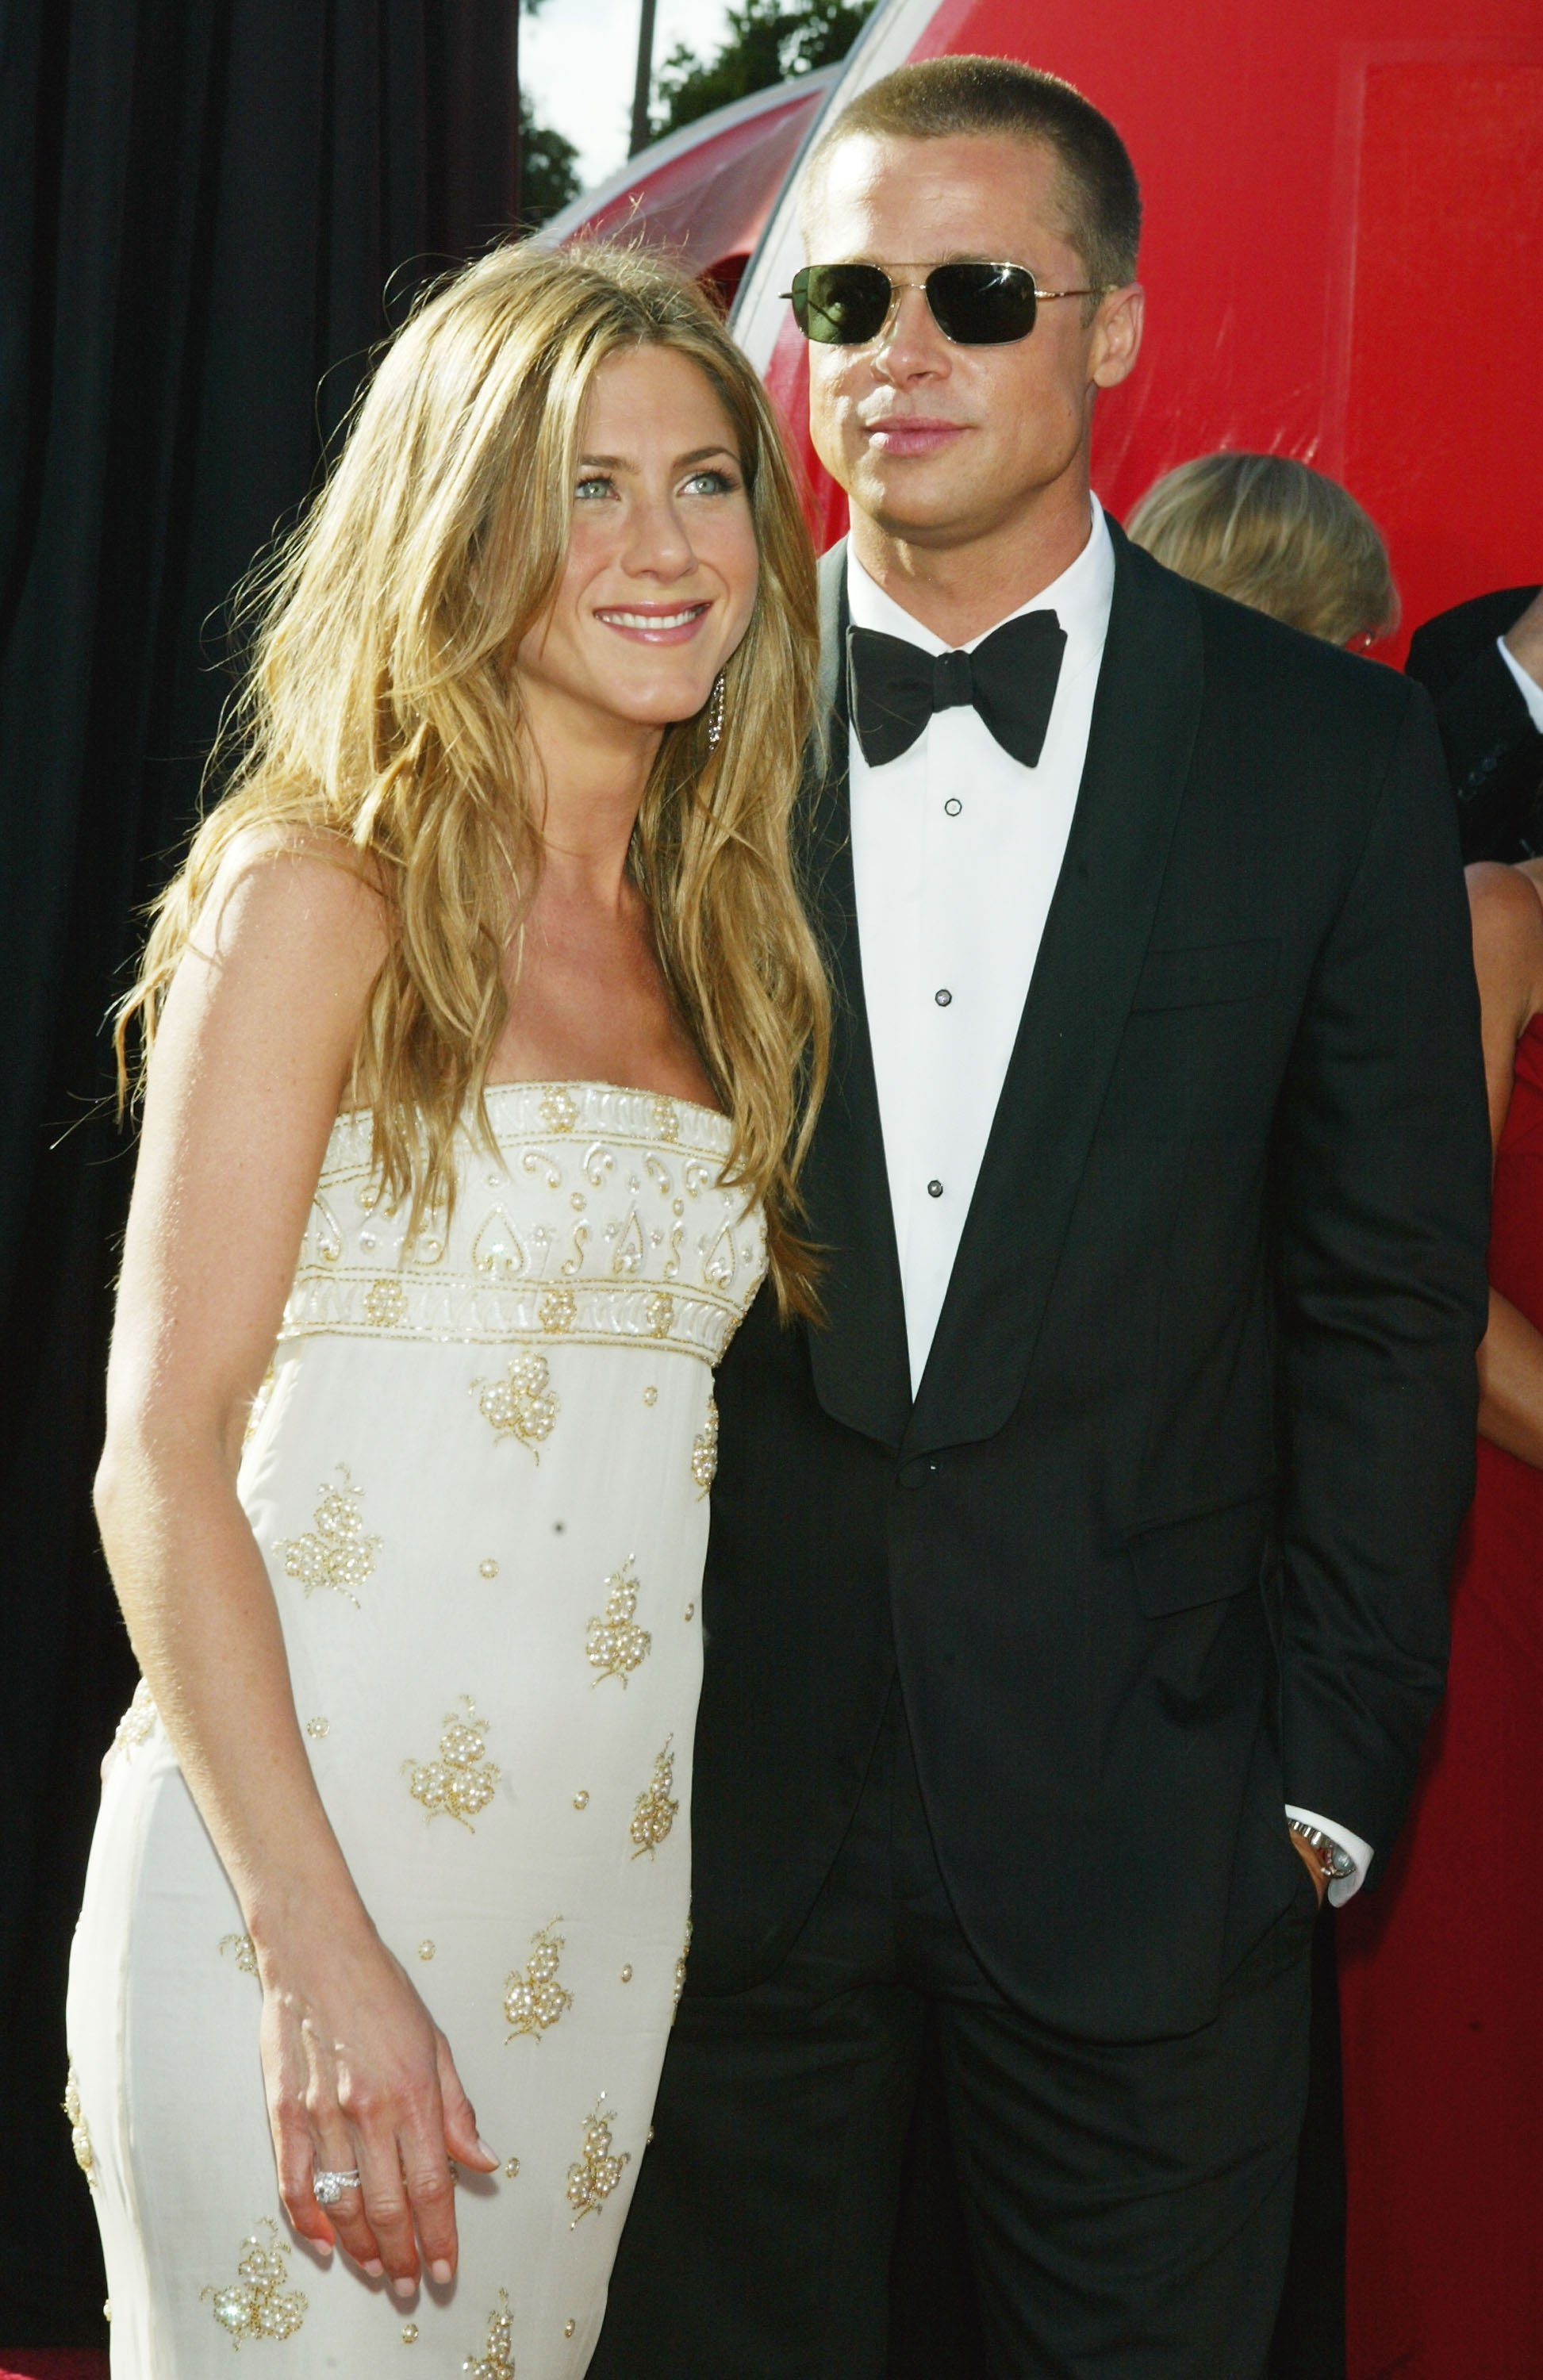 Image Credits: Getty Images / Kevin Winter | Actors Jennifer Aniston and husband Brad Pitt attend the 56th Annual Primetime Emmy Awards at the Shrine Auditorium September 19, 2004 in Los Angeles, California.